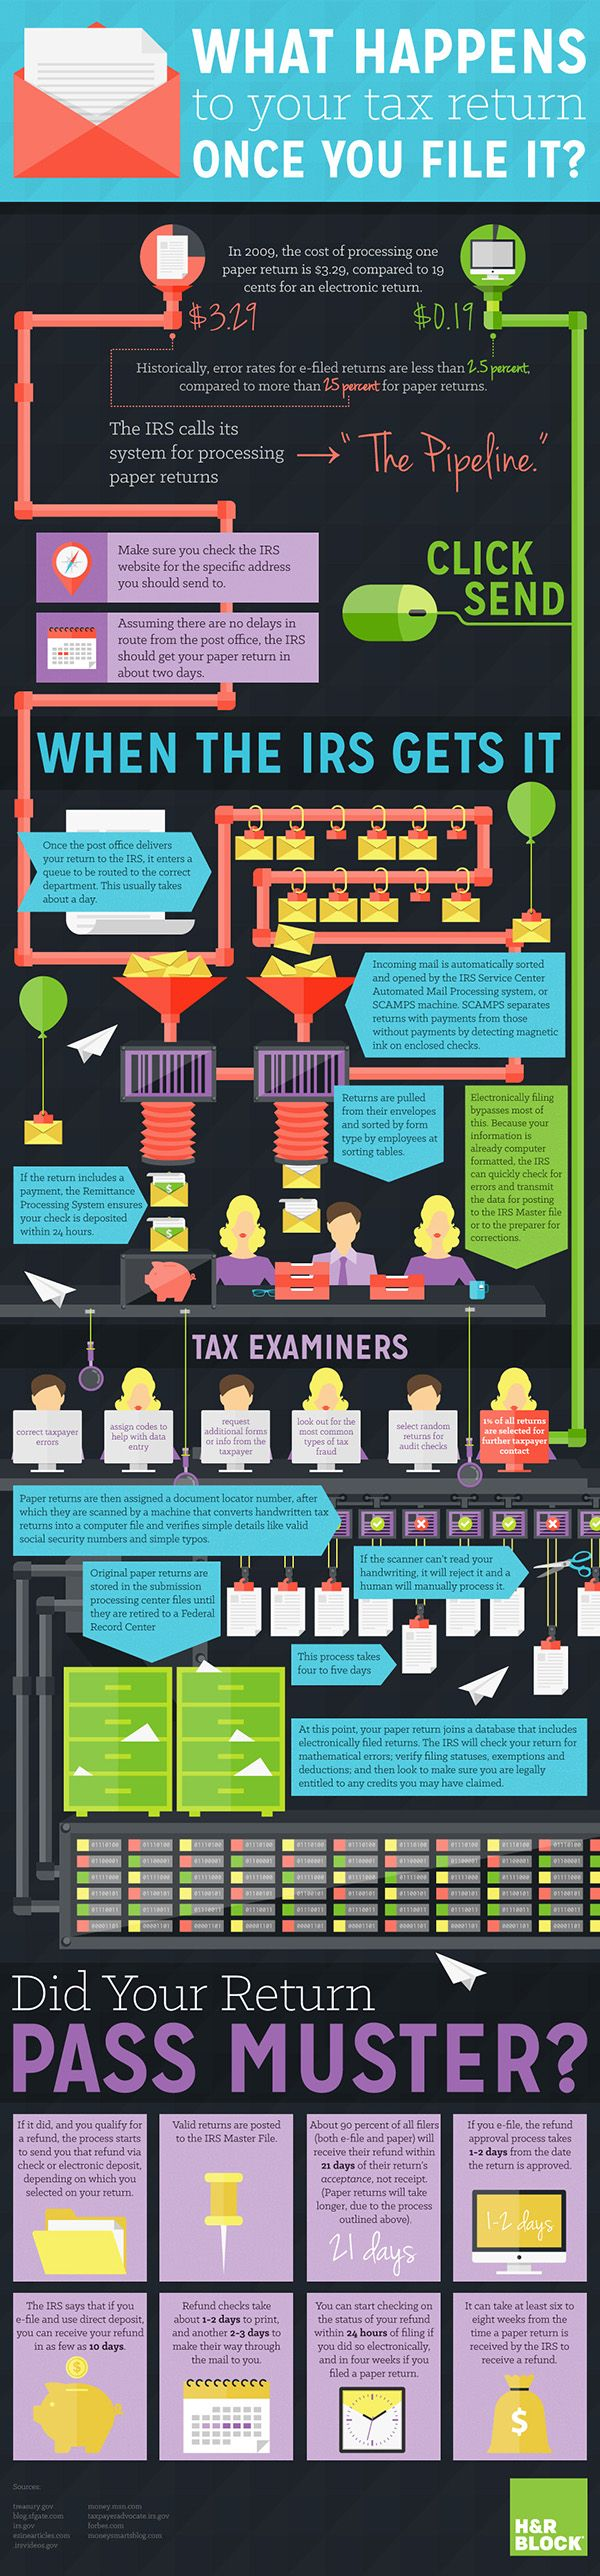 How a Return a Refund [INFOGRAPHIC] Tax return